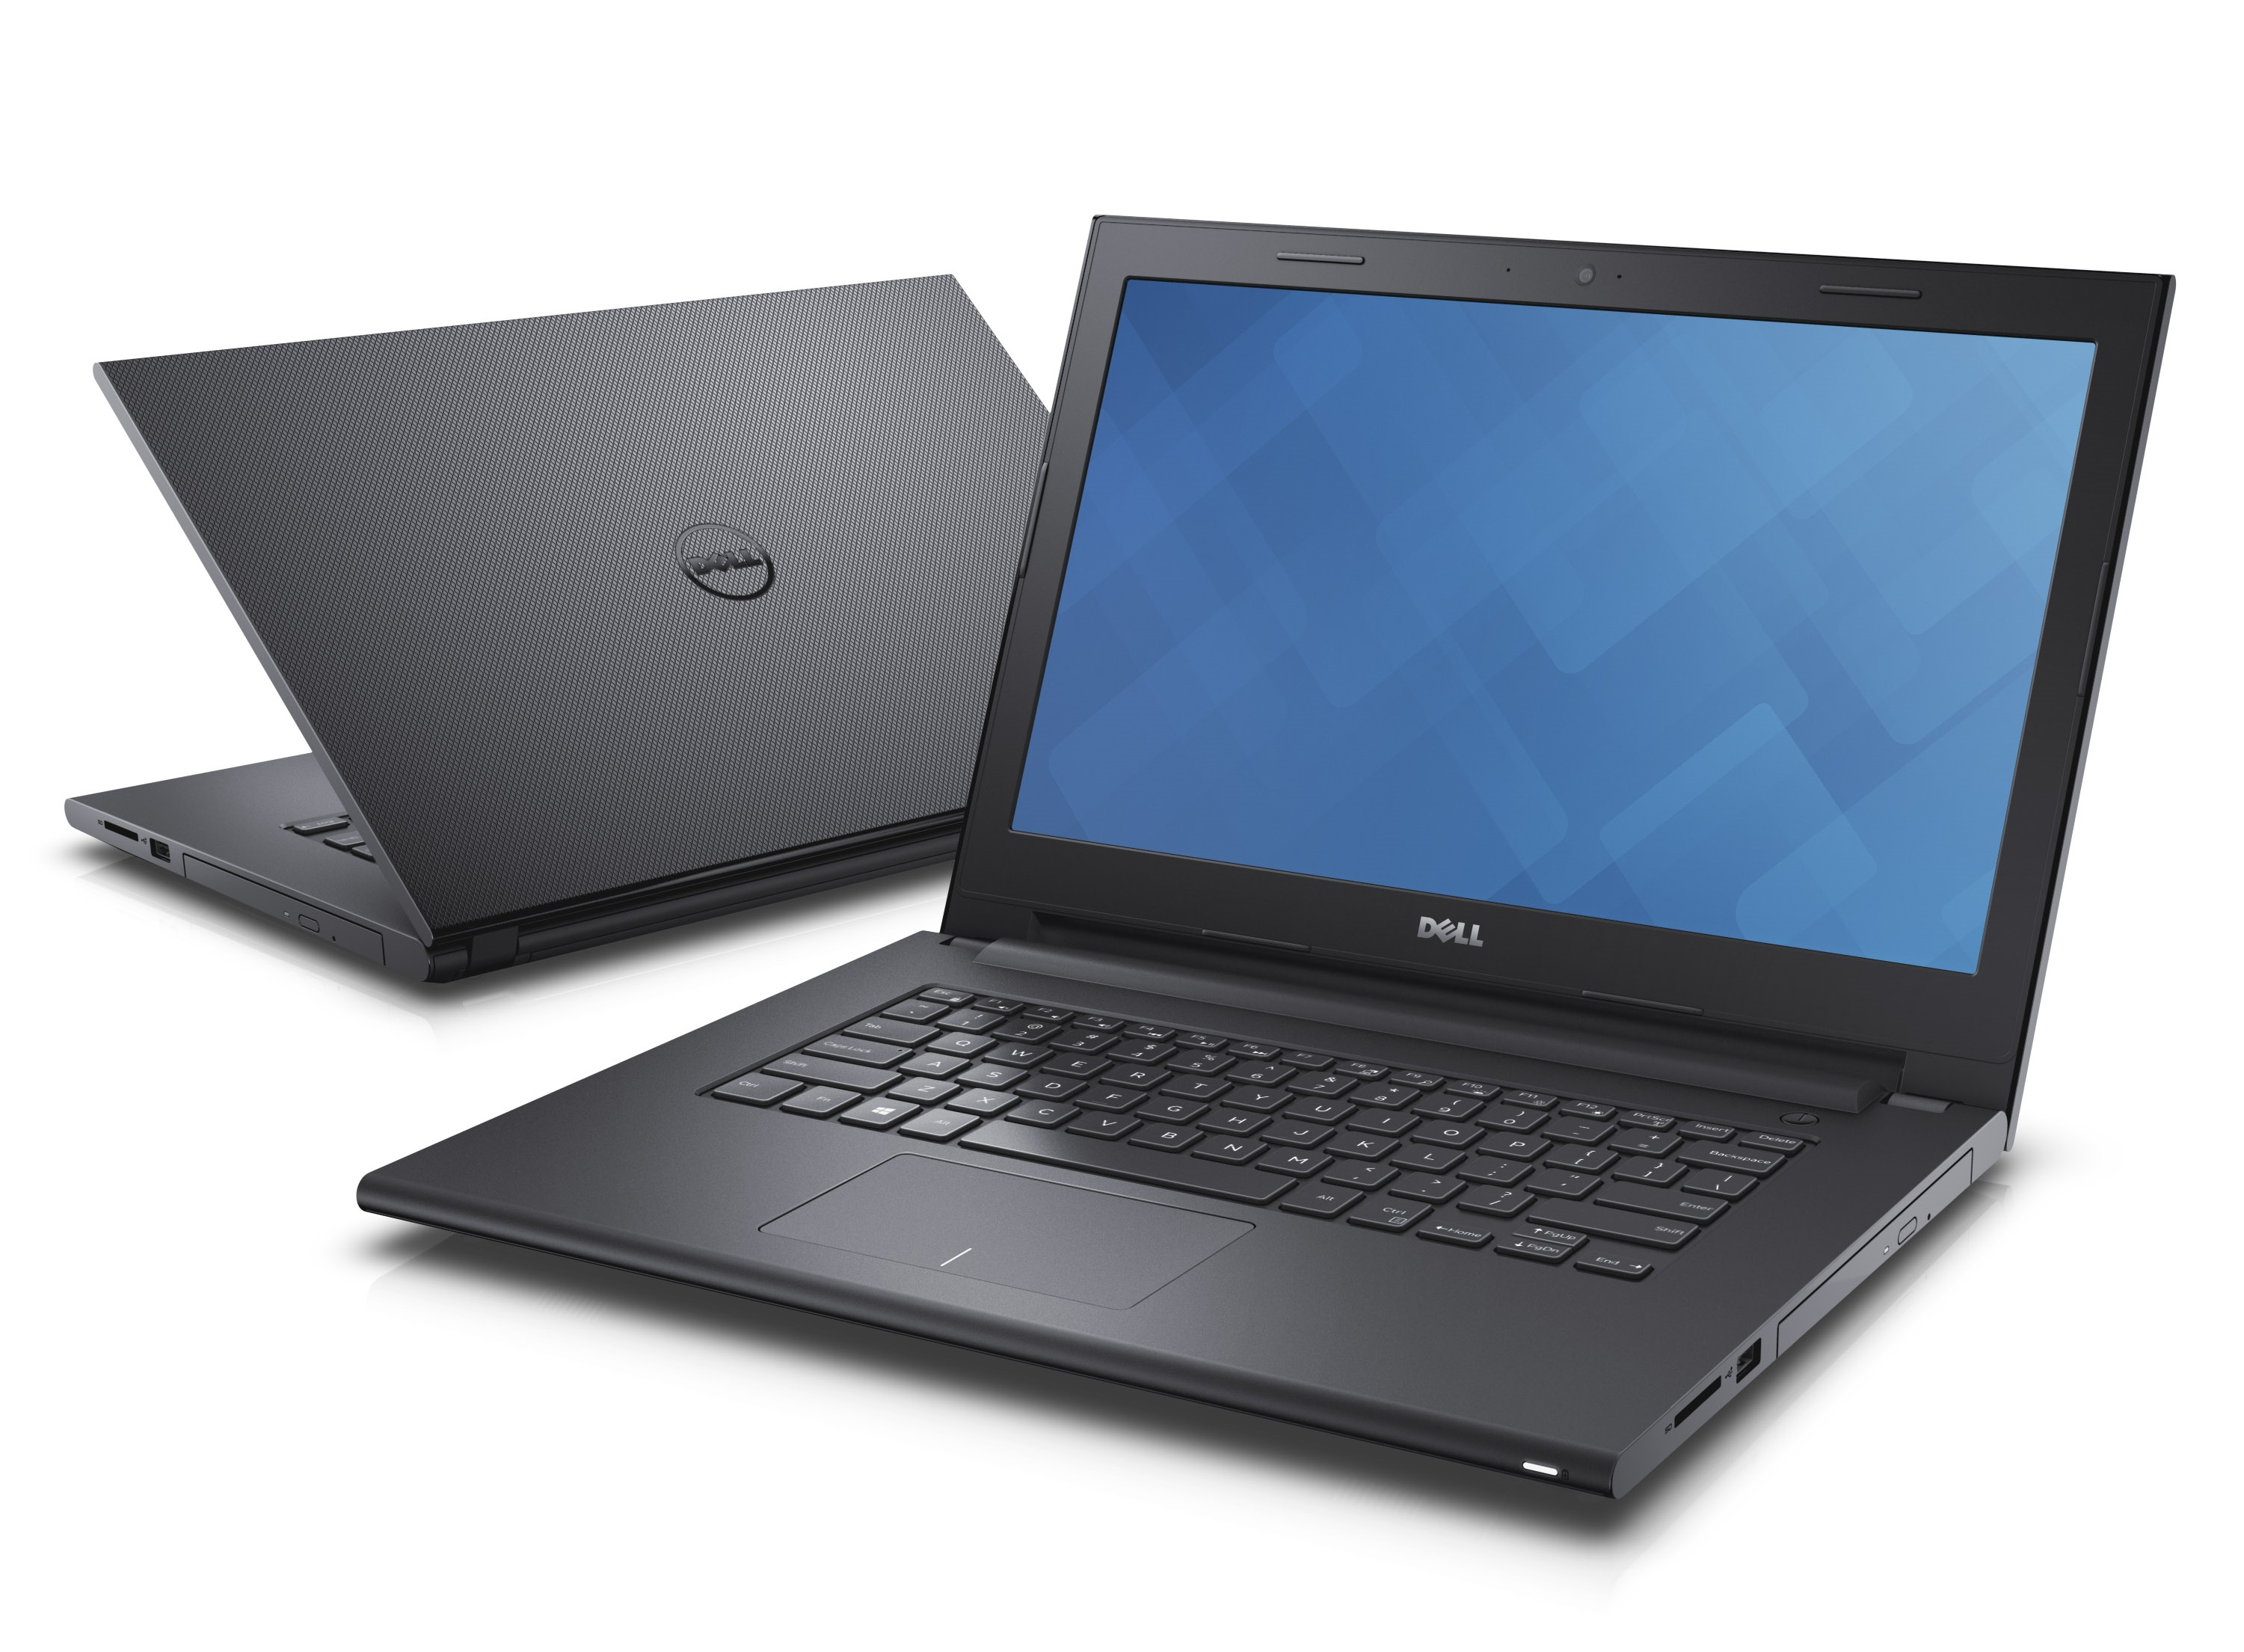 Dell Inspiron 14 3000 Review Gearopen